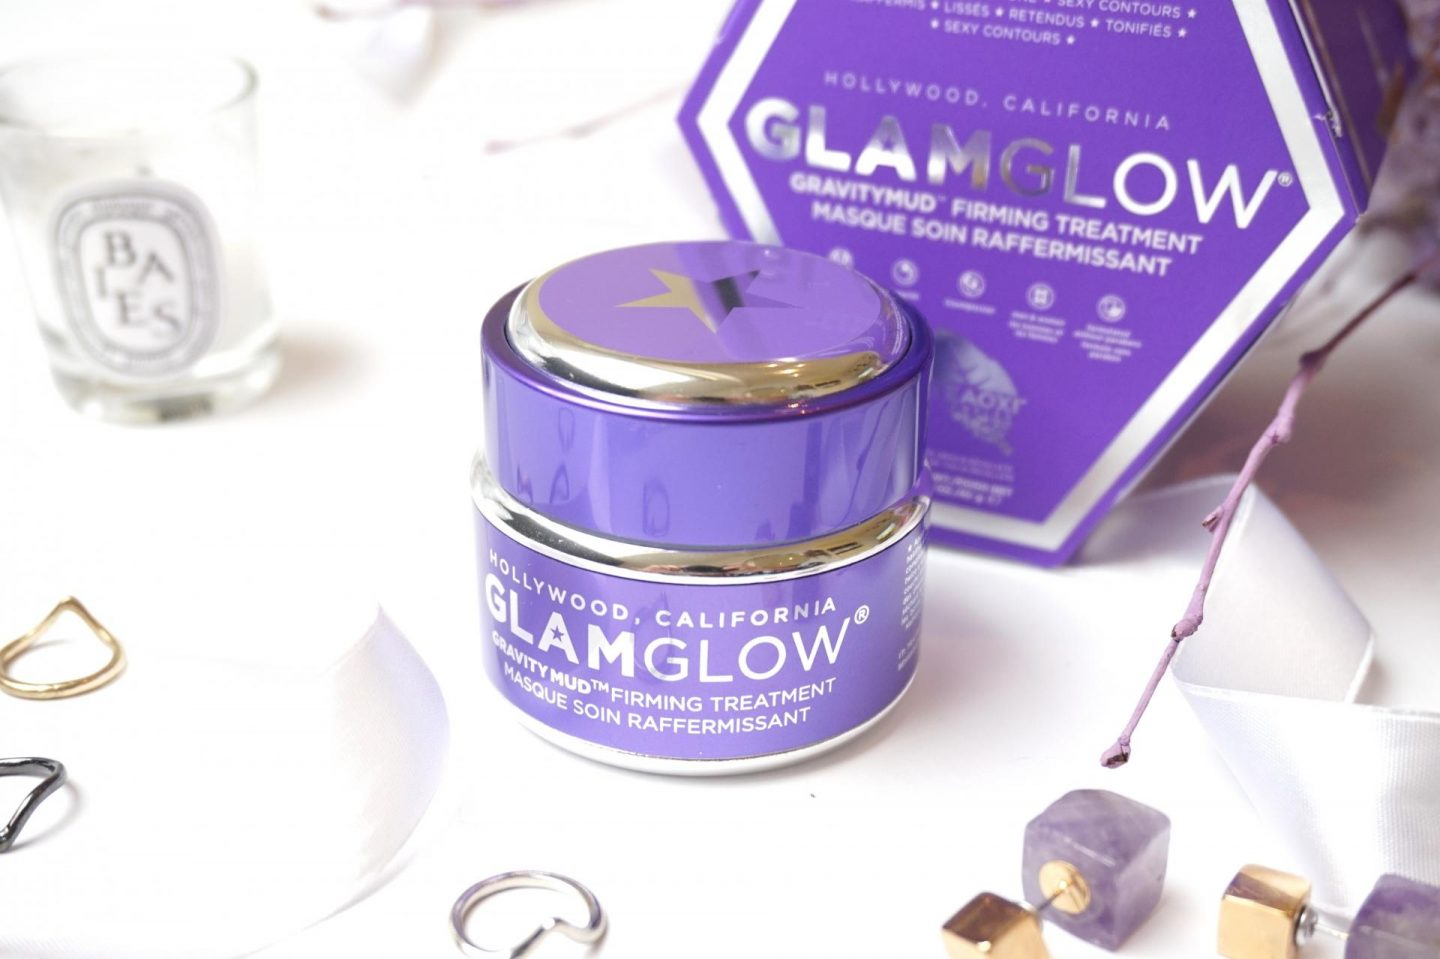 Glamglow: Gravitymud Mask Firming Treatment